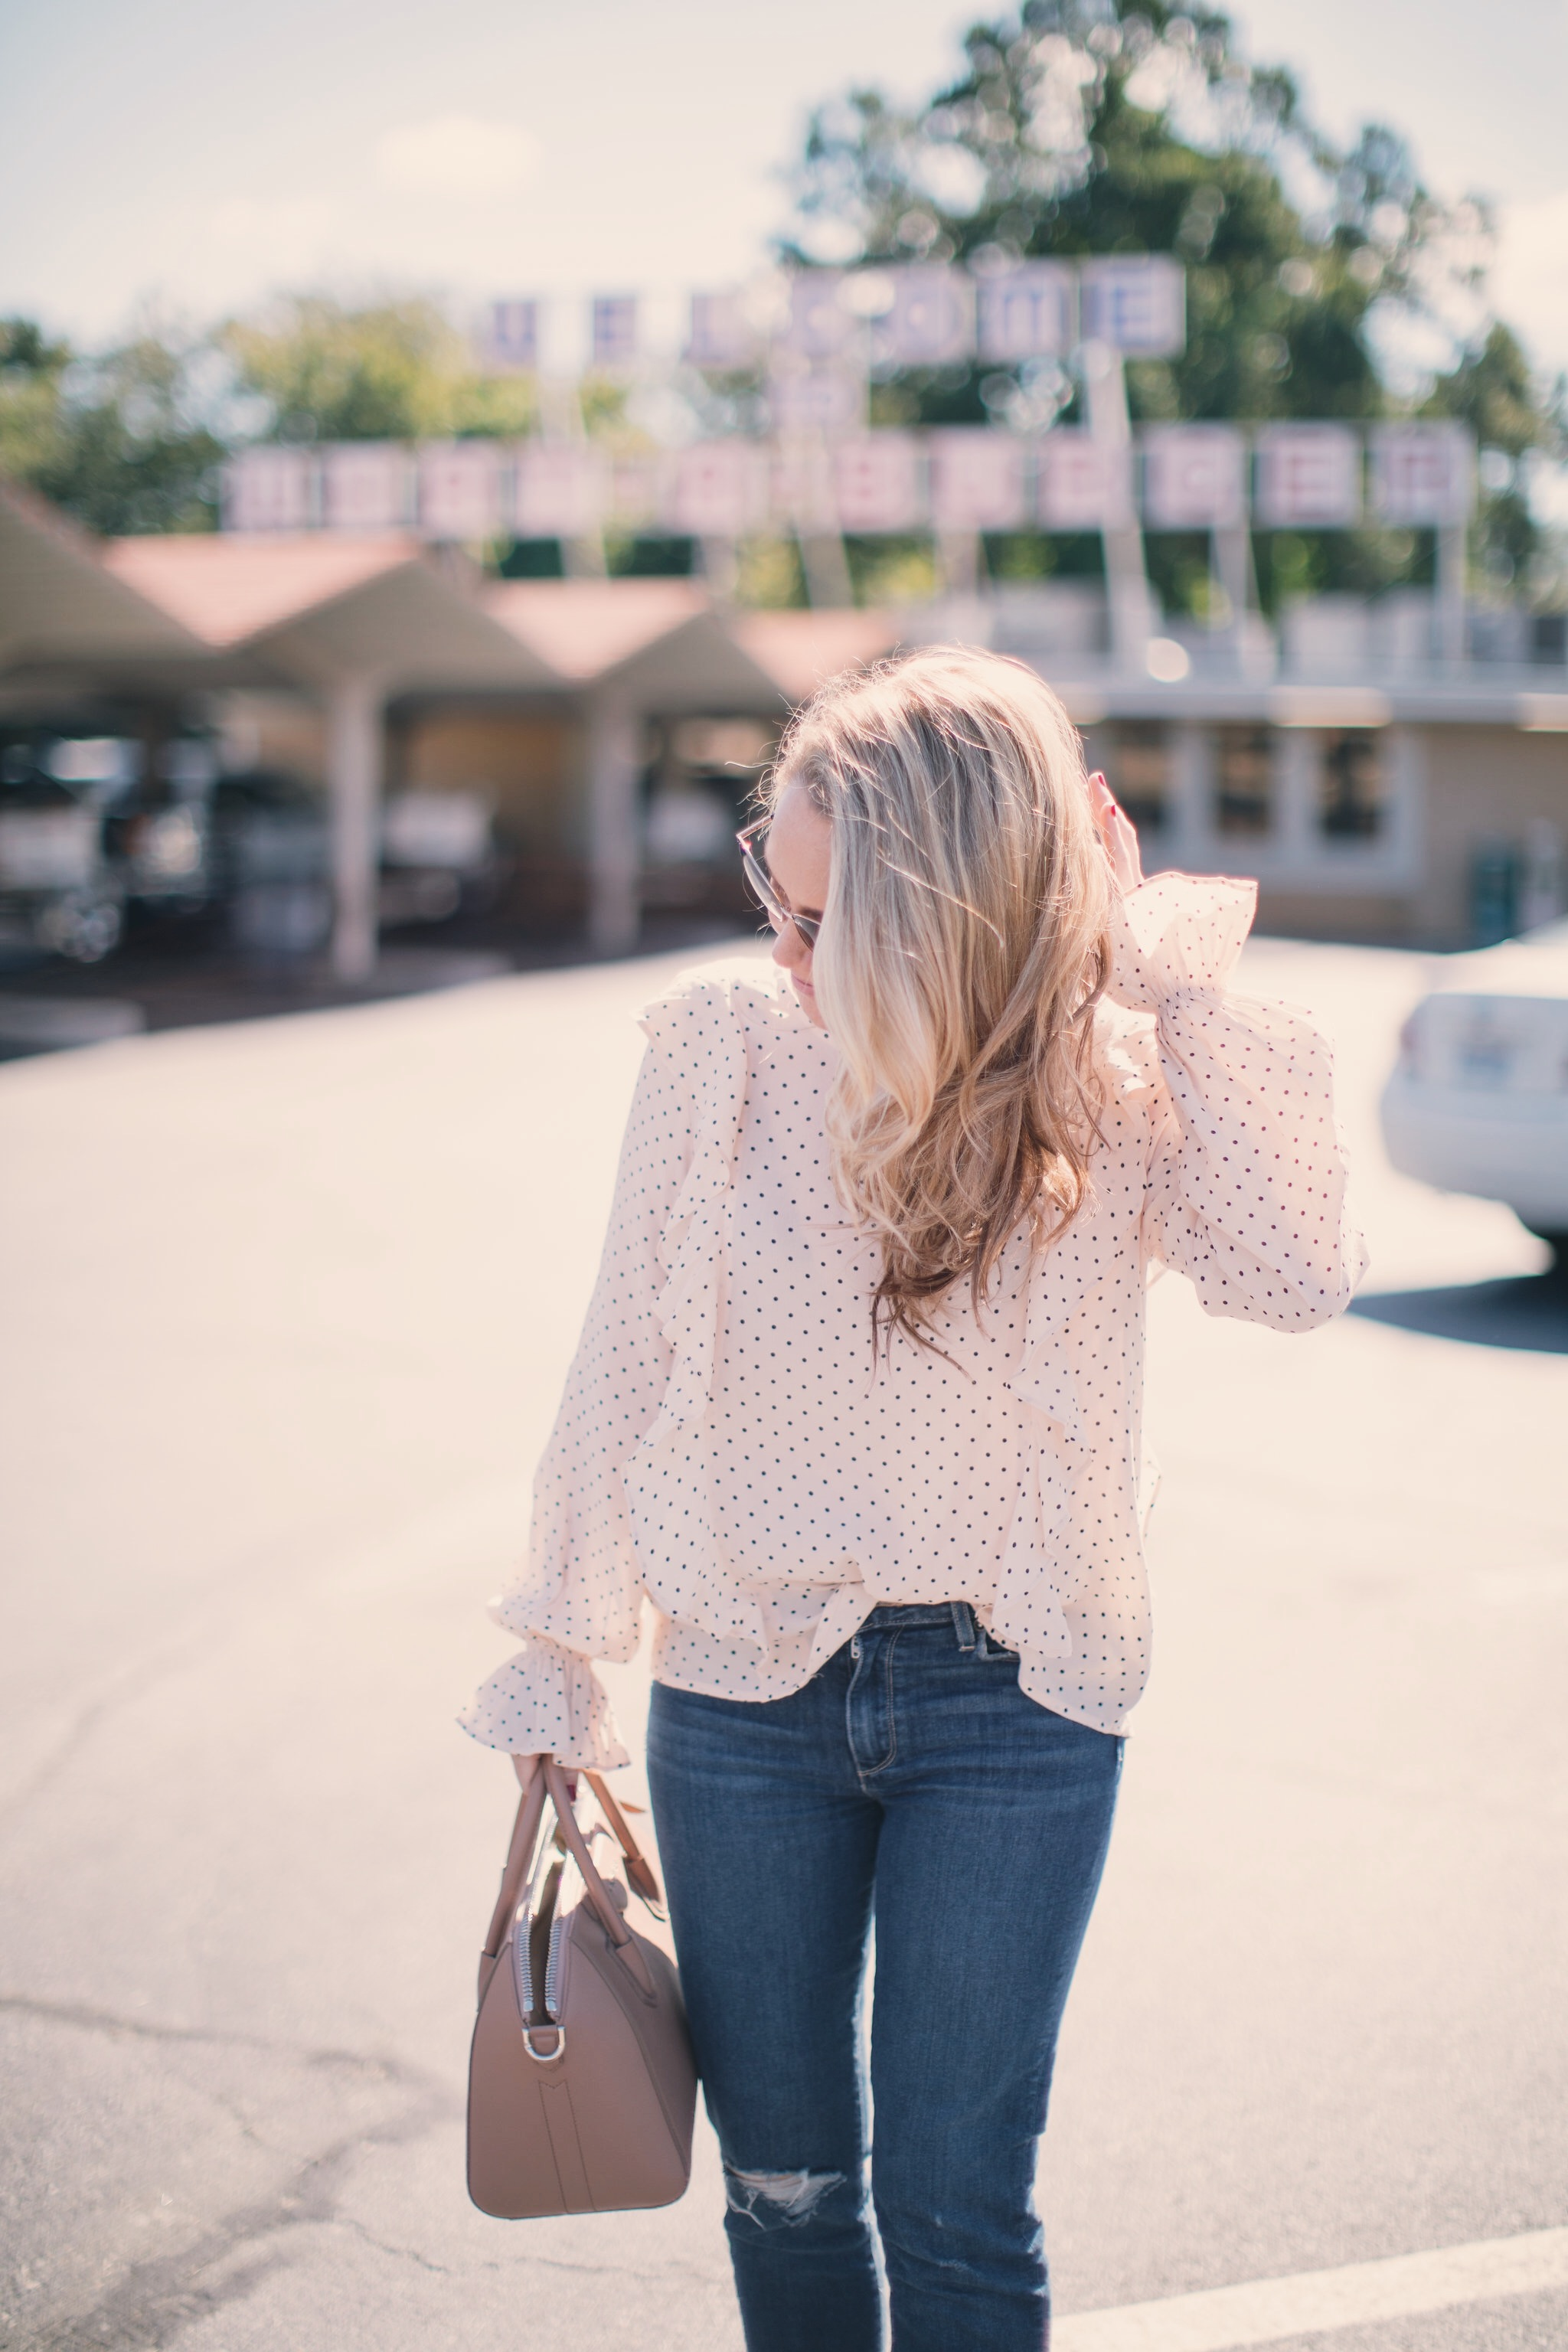 The perfect top for fall today on ECW! - Pretty Little Polka Dot Blouse by North Carolina fashion blogger Every Chic Way